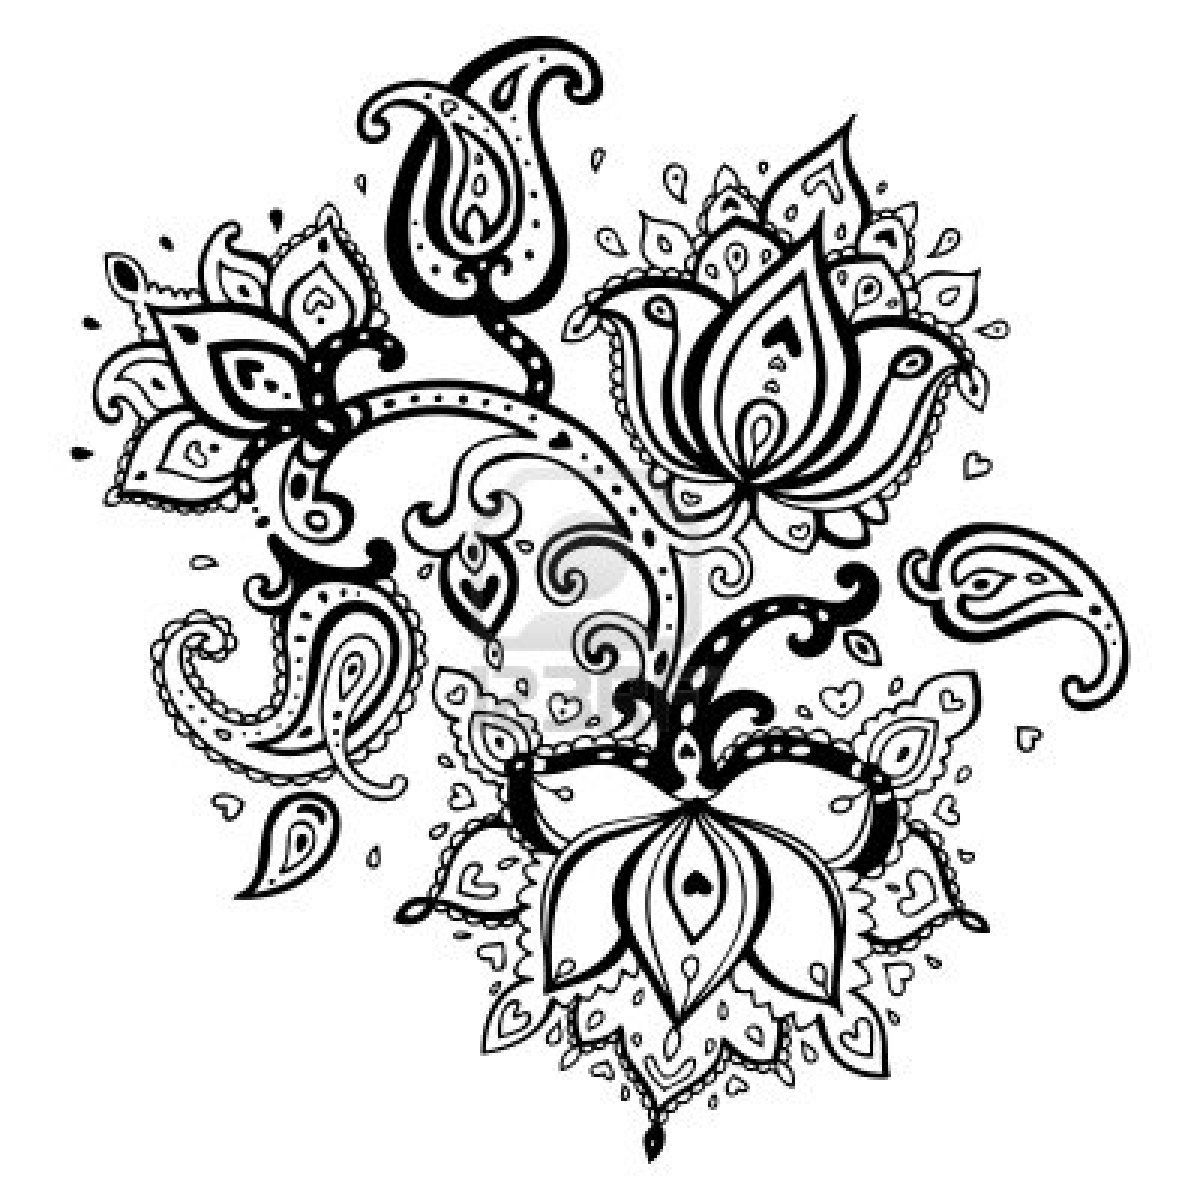 Paisley ornament lotus flower vector illustration isolated stock paisley ornament lotus flower vector illustration isolated stock photo 18516068 izmirmasajfo Image collections